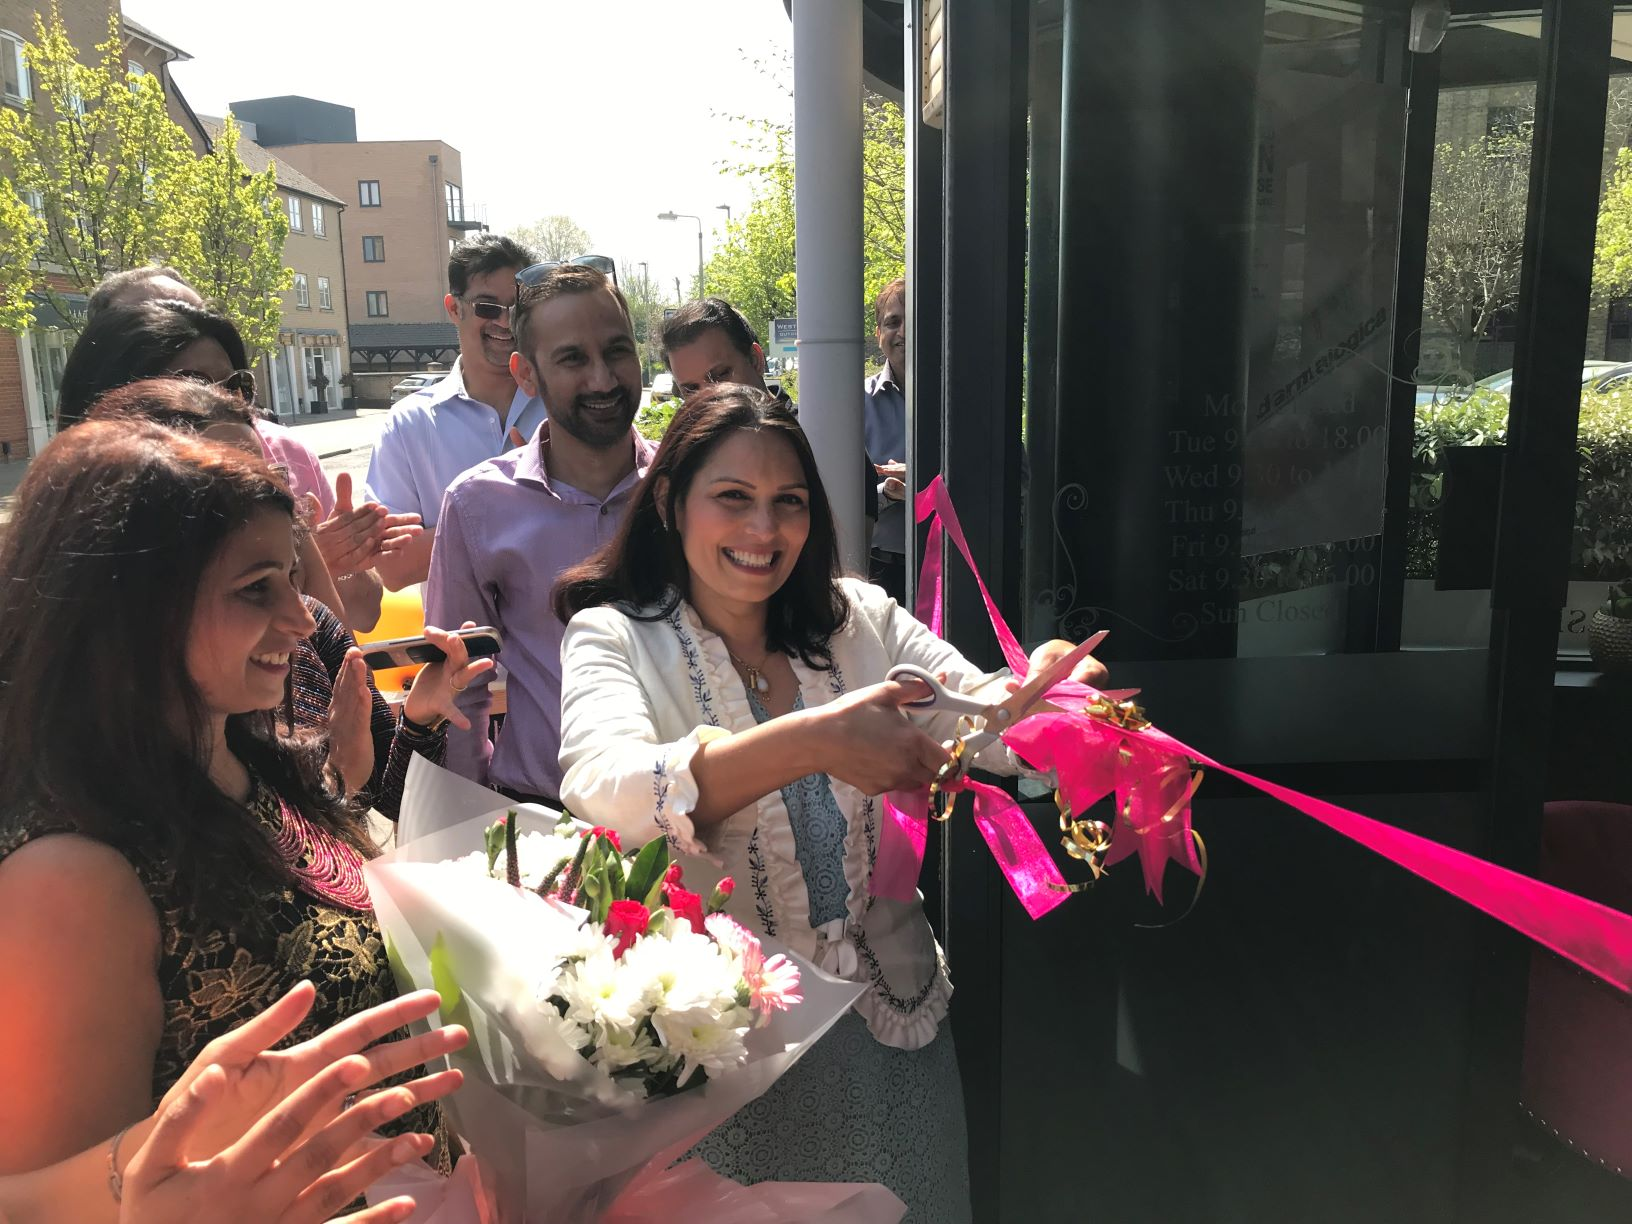 Priti Patel MP cutting the ribbon to declare the Luxe Studio open